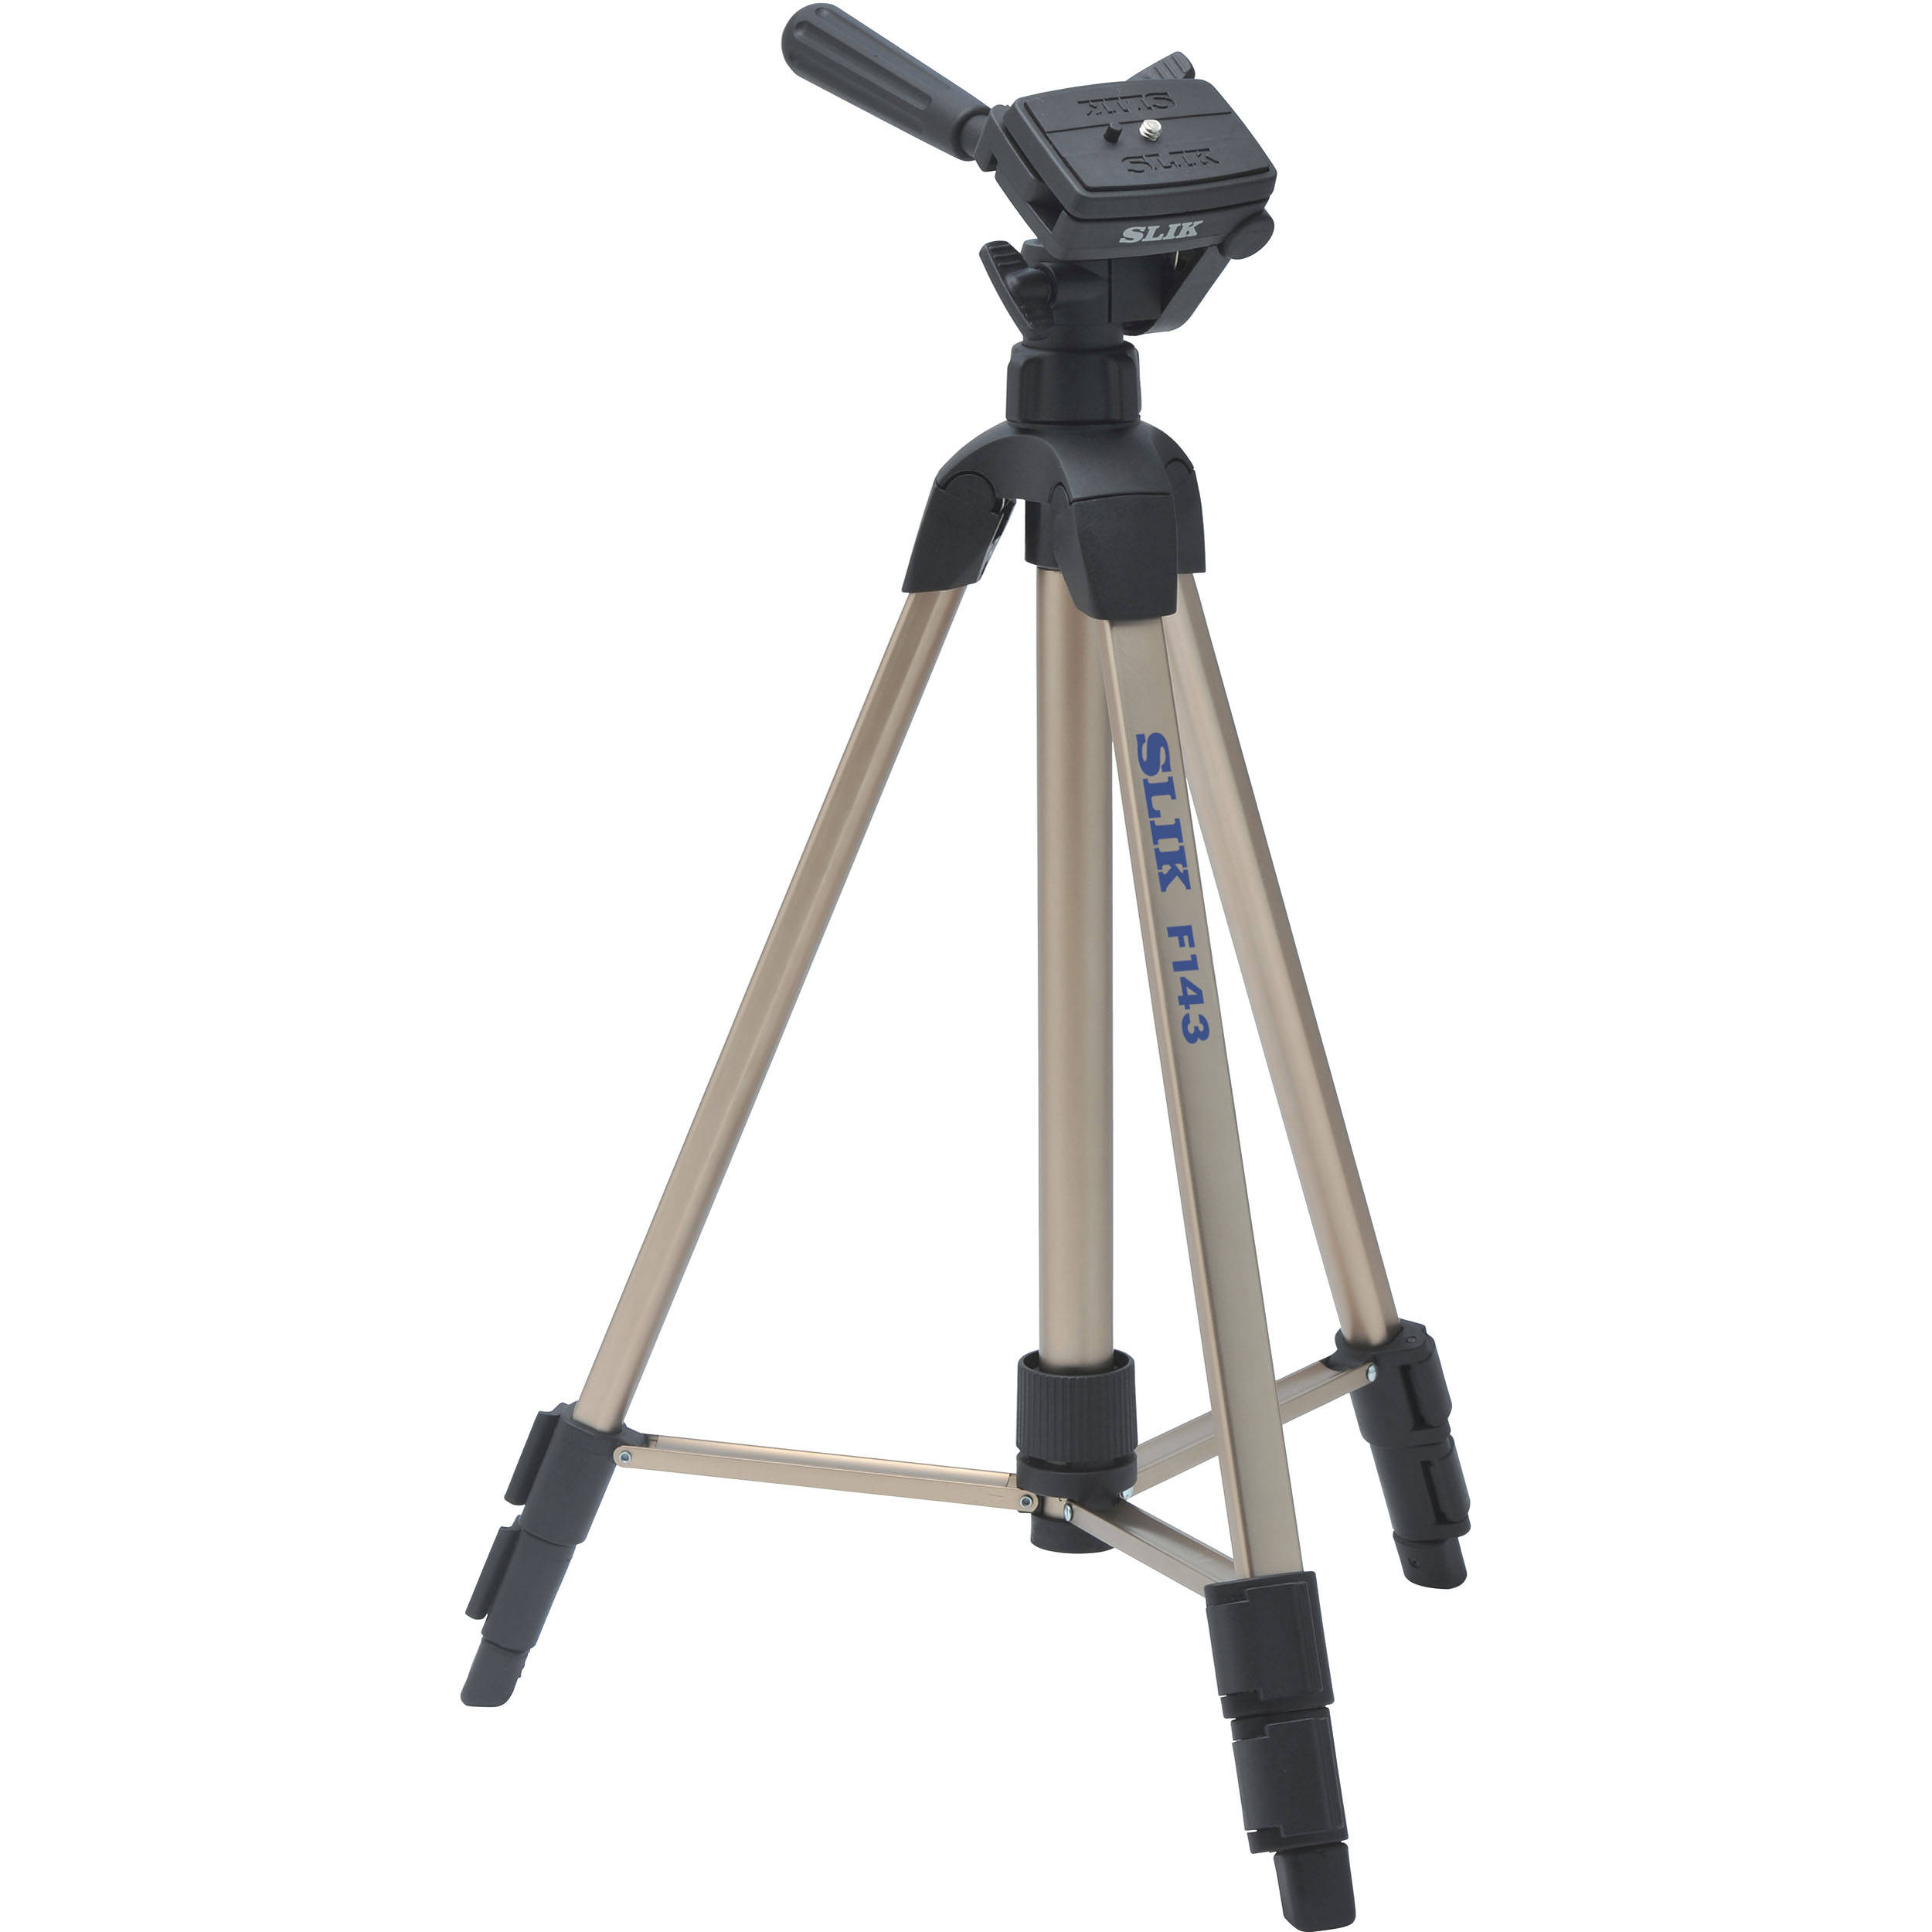 What Is Aluminum Used For >> Slik F143 Lightweight Aluminum Tripod with 3-Way Panhead 617-143